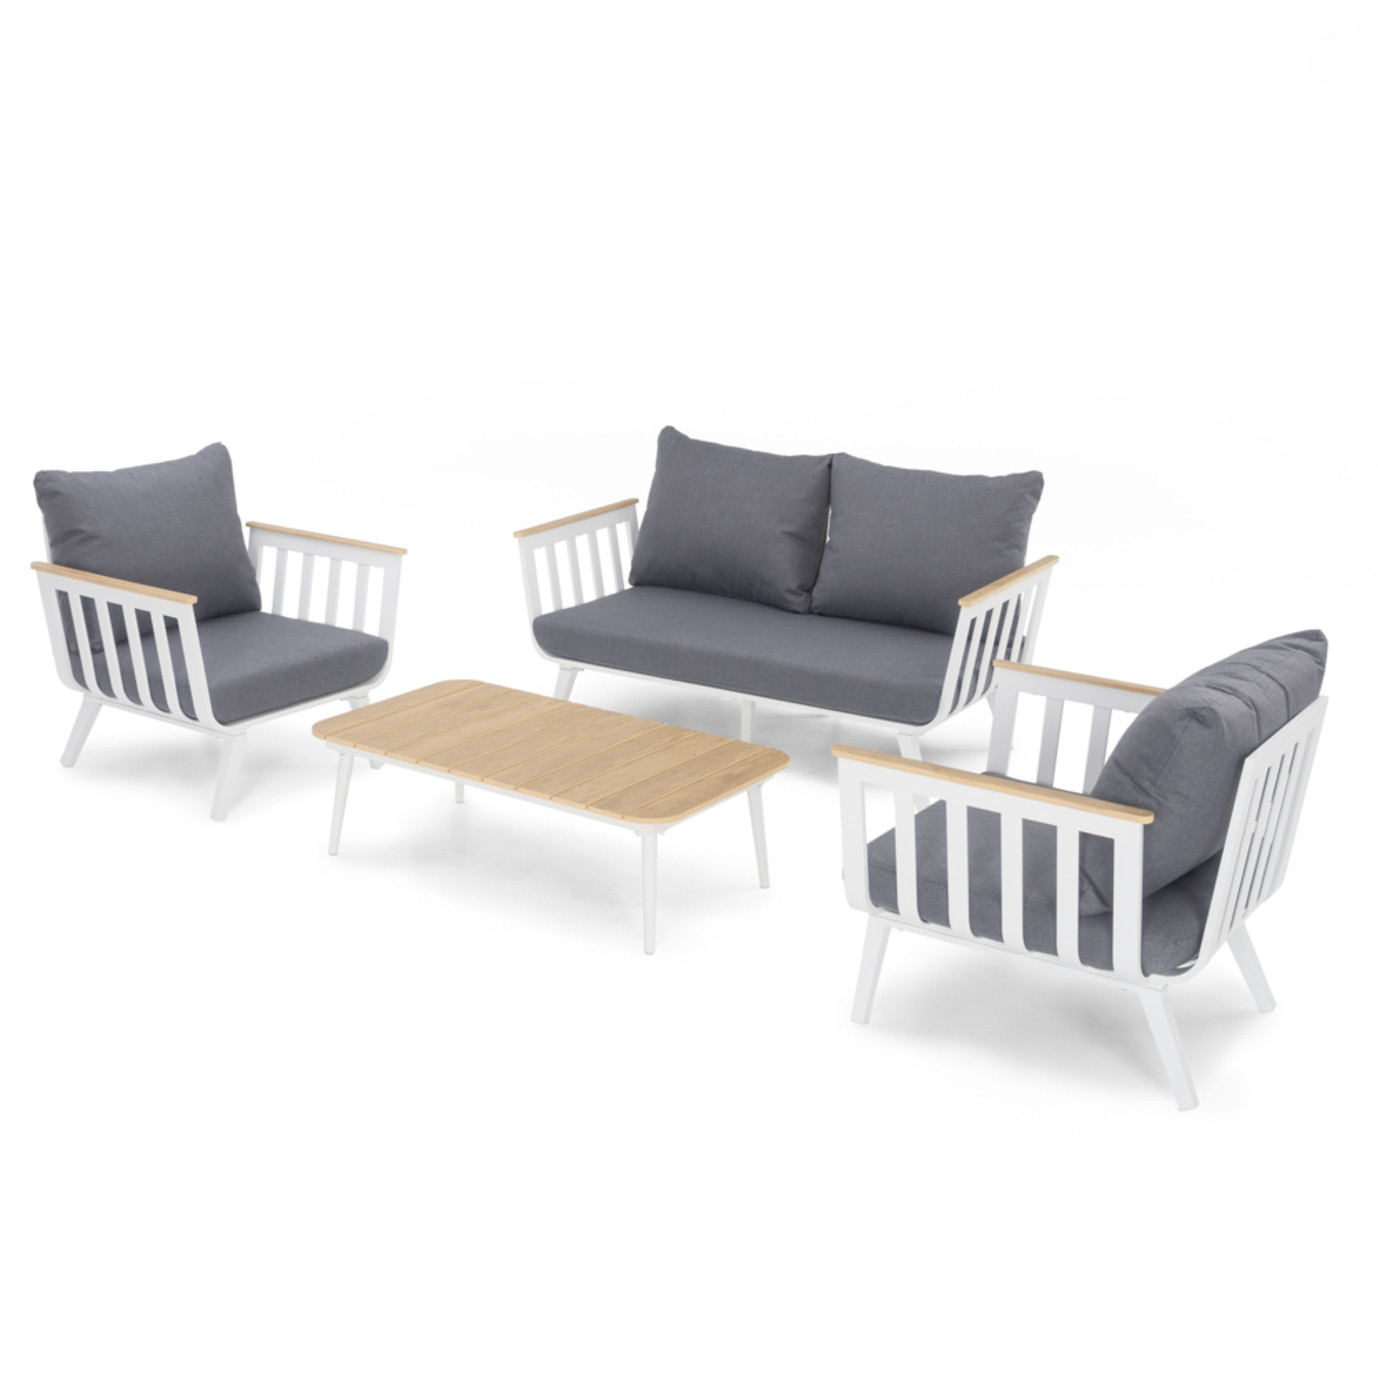 Vera™ 4pc Seating Group - Charcoal Grey